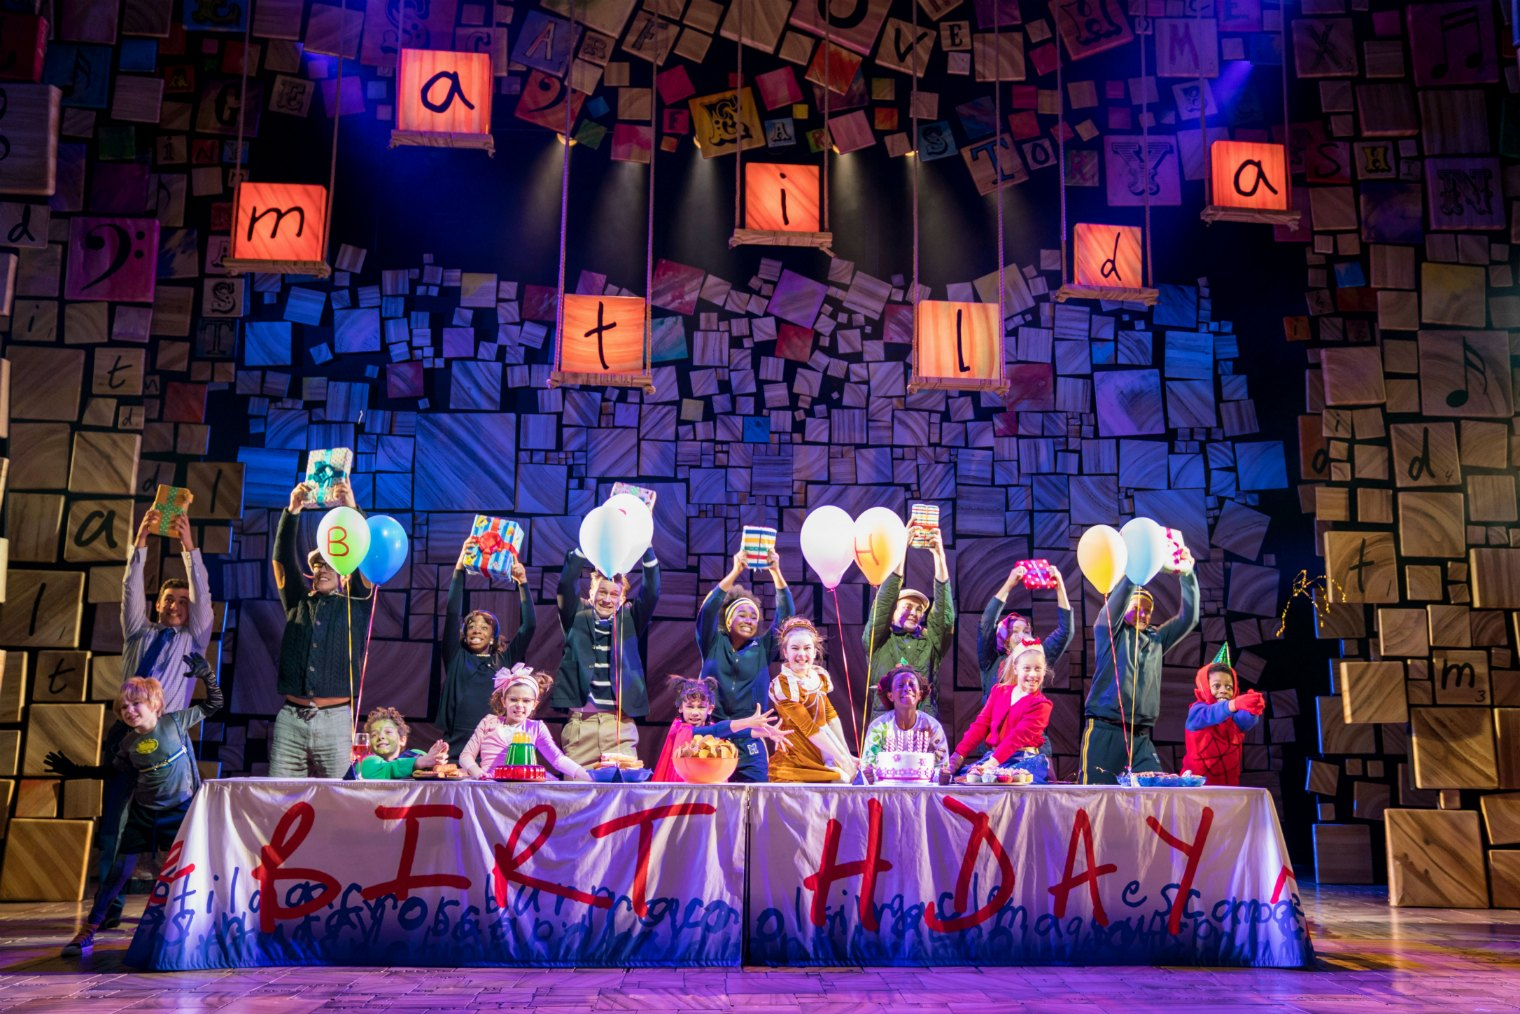 The Royal Shakespeare Company to host first UK and Ireland Tour Relaxed Performance of Matilda The Musical at Birmingham Hippodrome